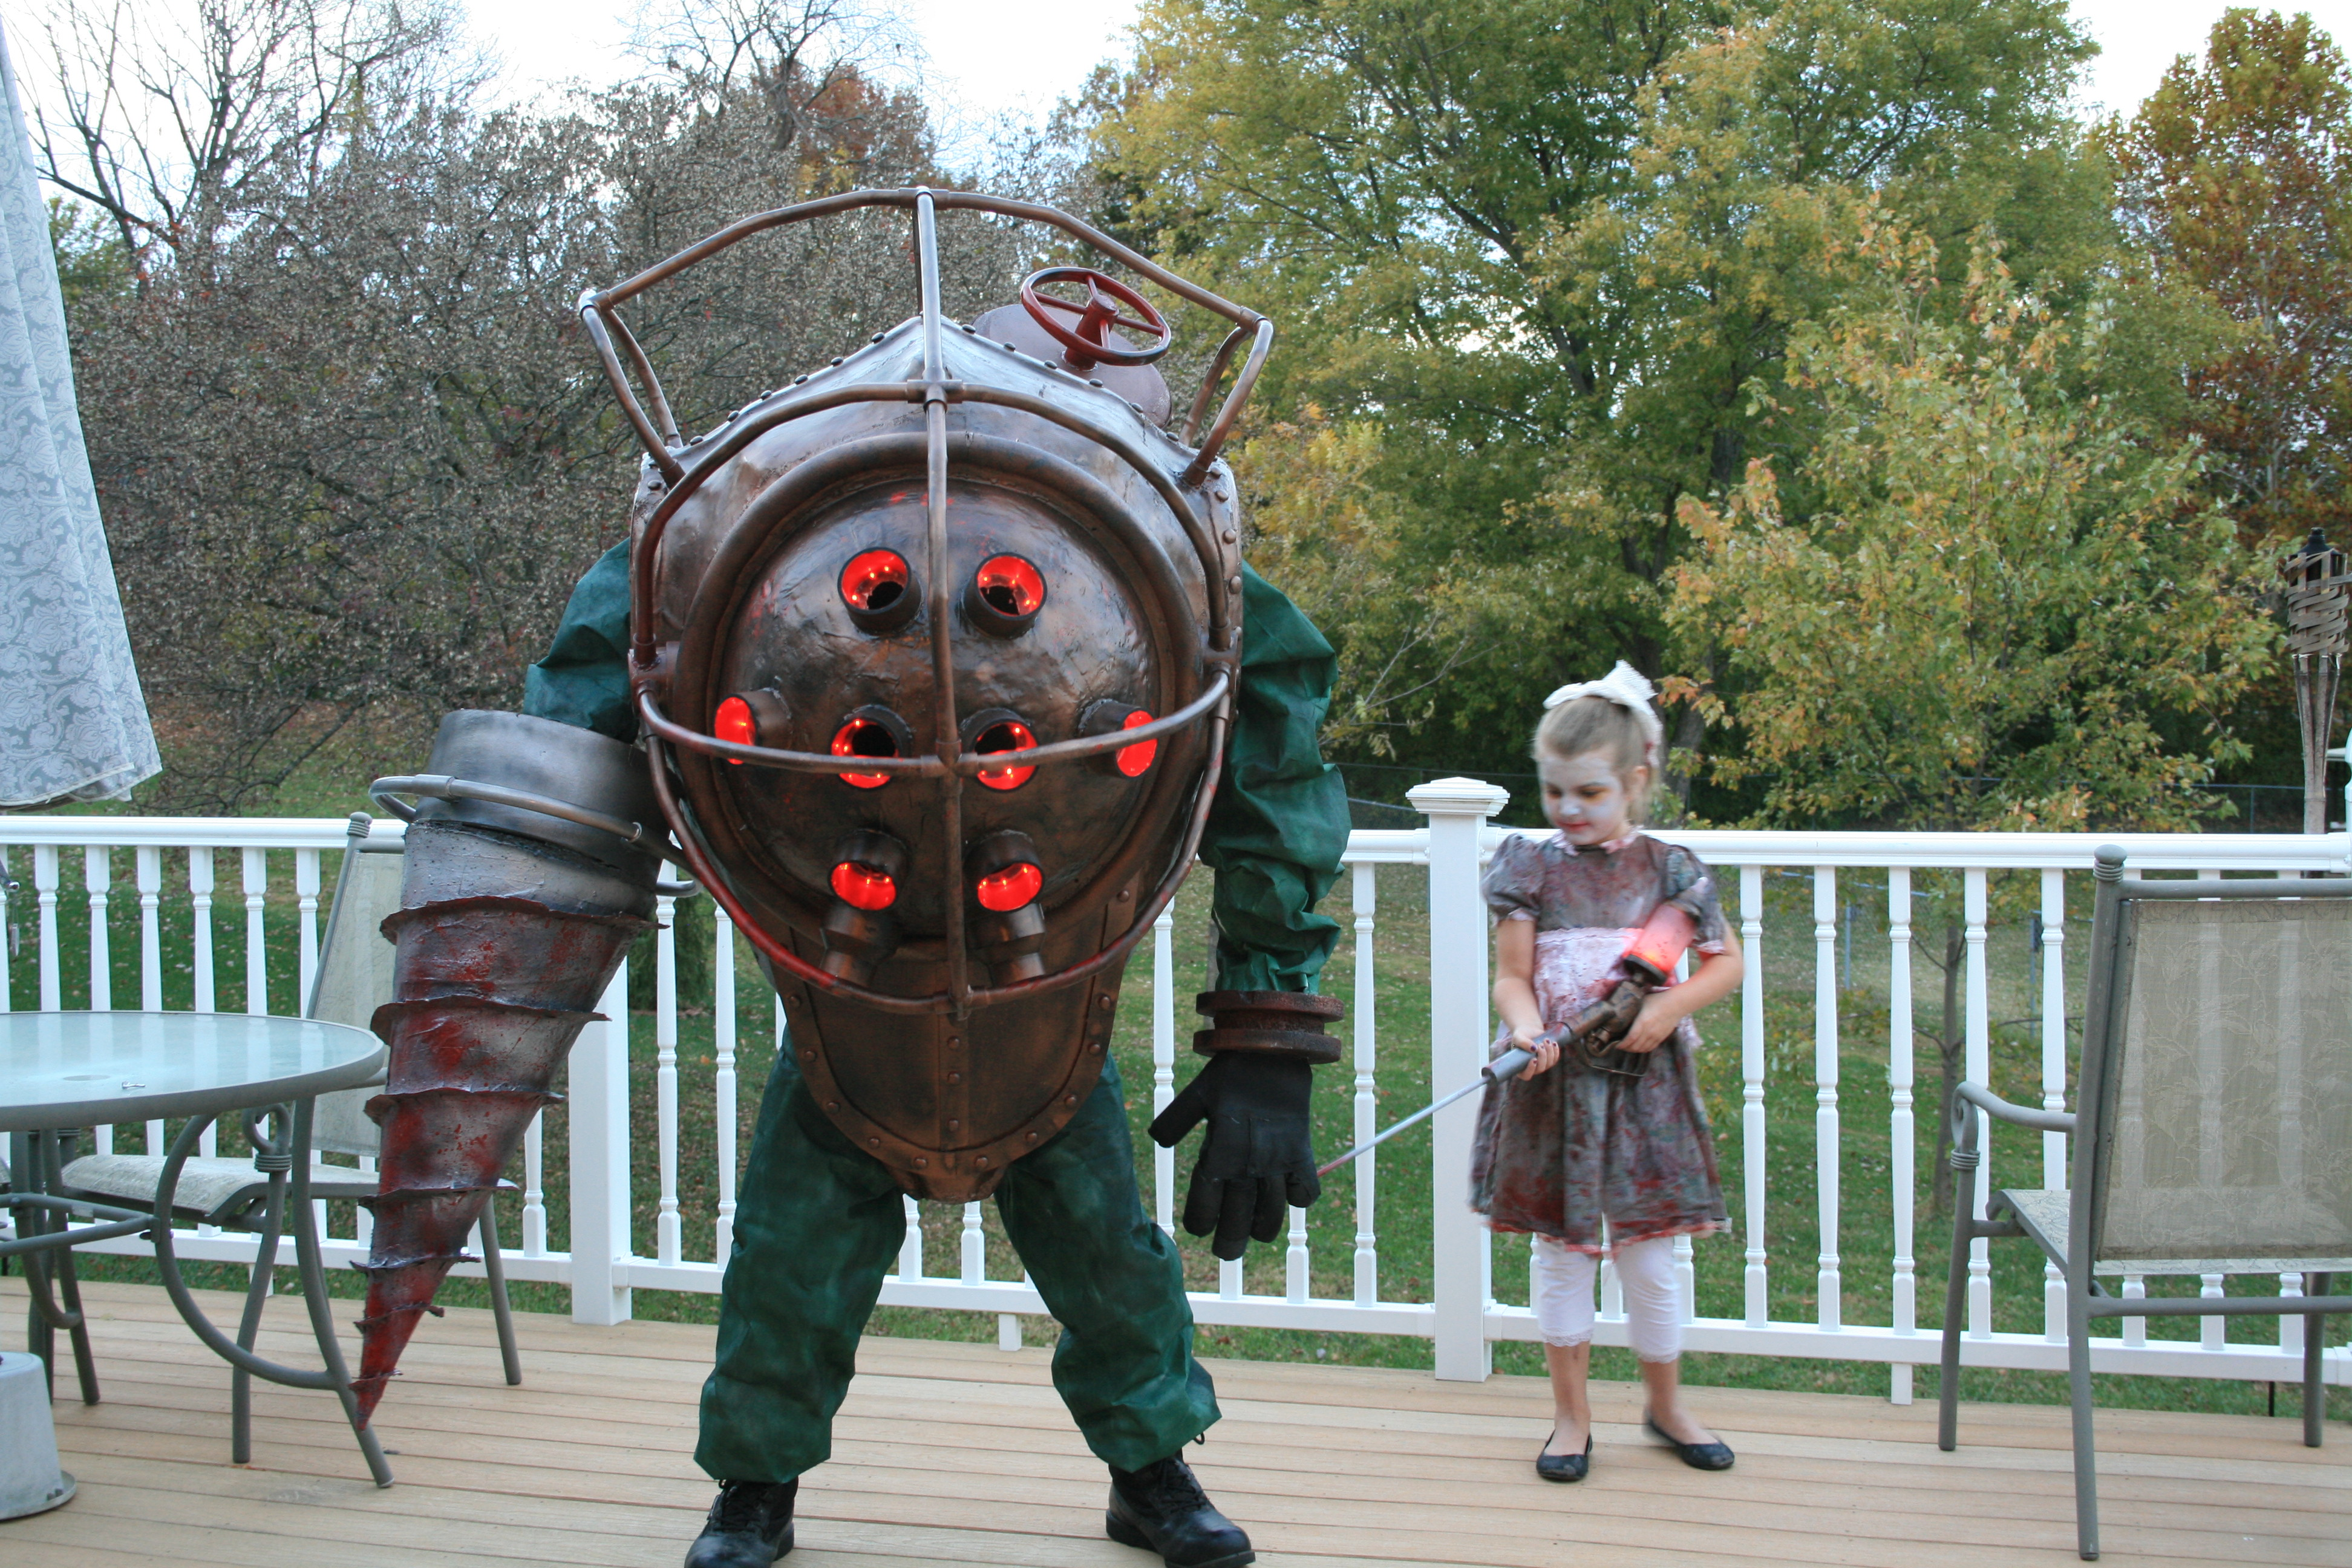 Bioshock..Big Daddy, Little Sister and Splicer